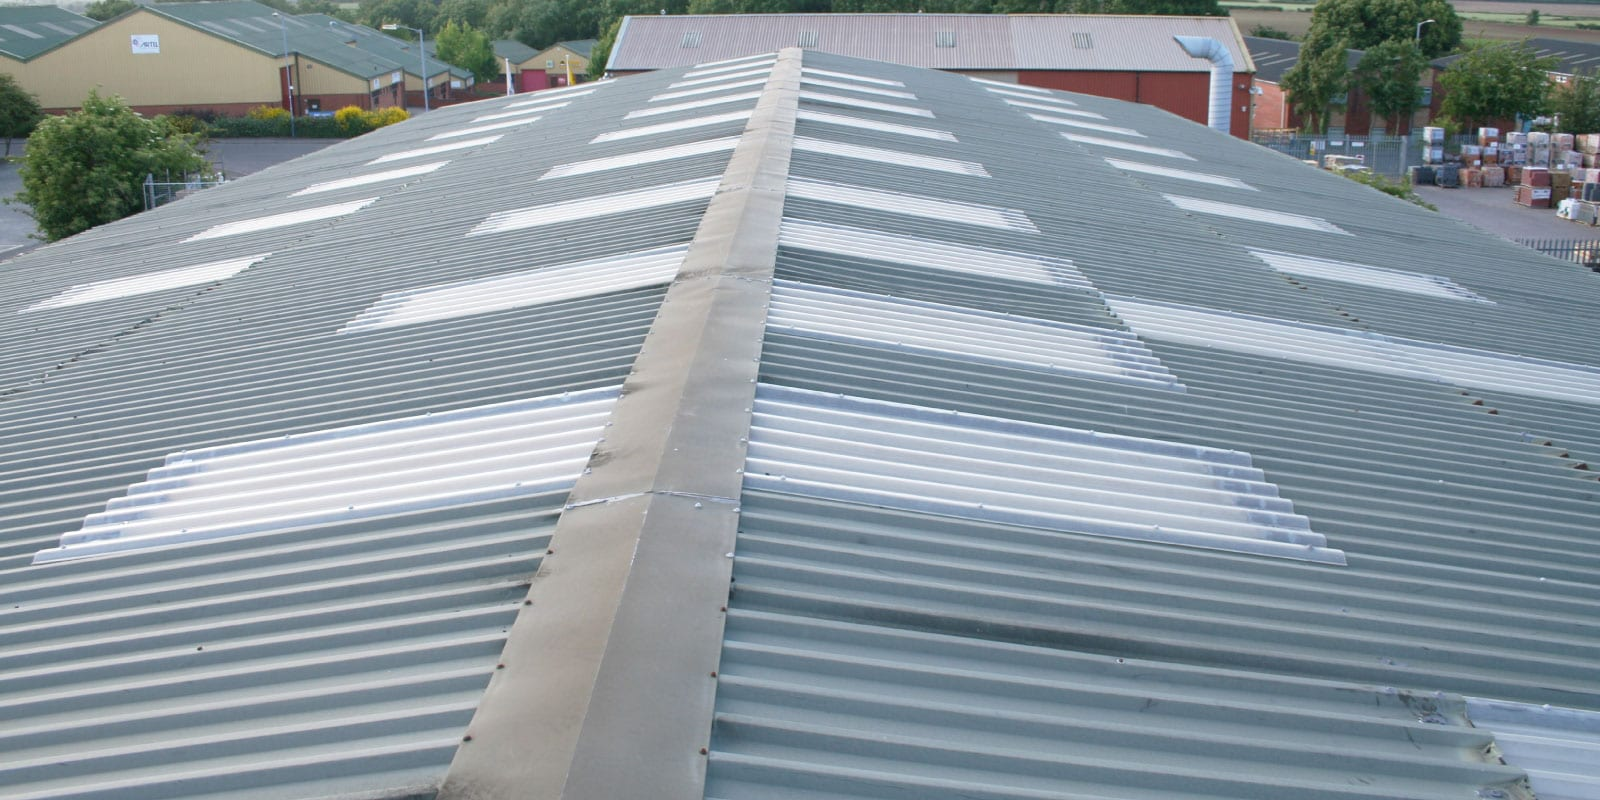 Fibreglass Roofing Panels Frp For Industrial And